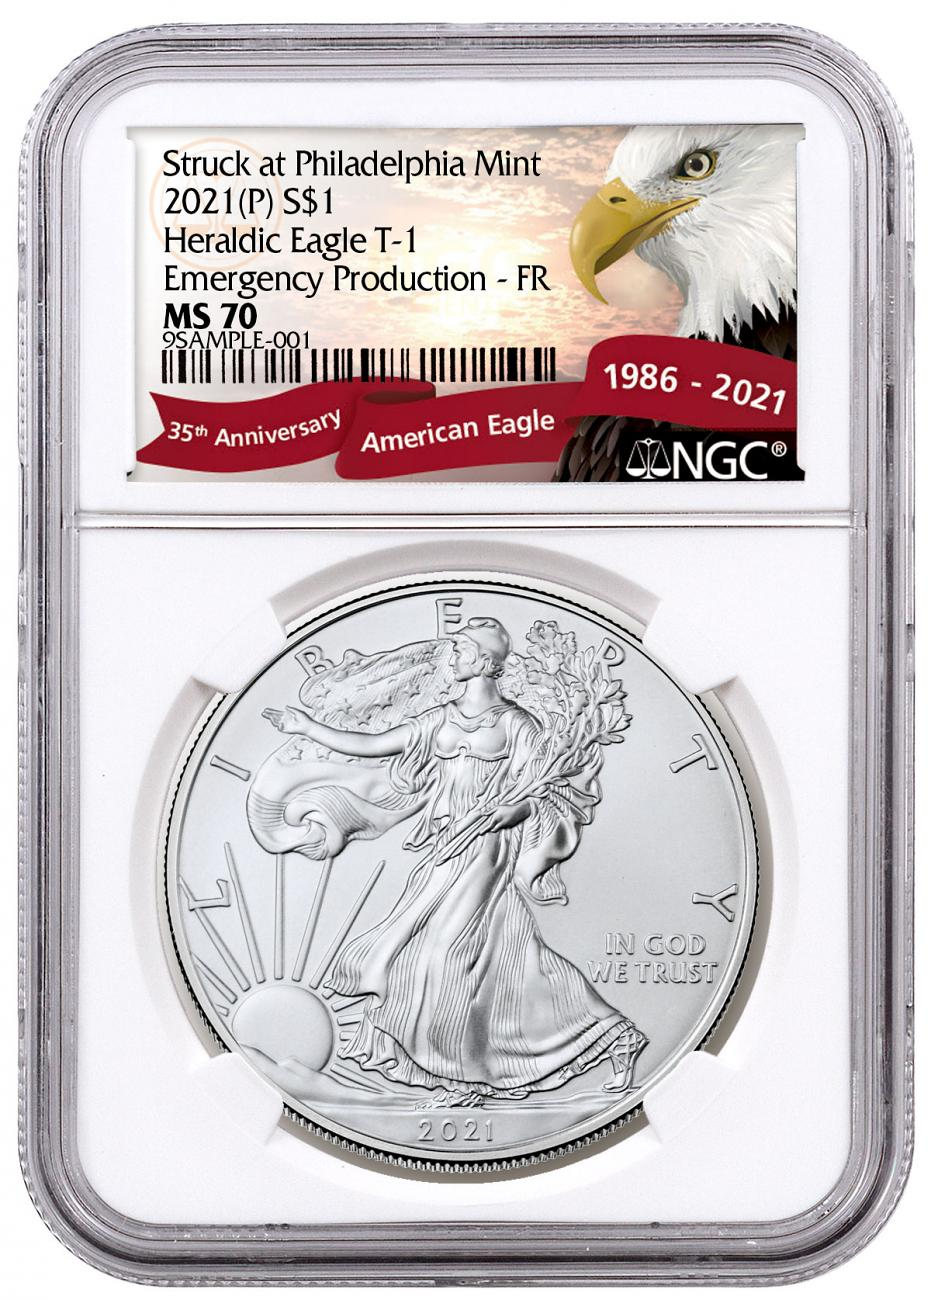 2021-(P) American Silver Eagle Struck at Philadelphia Mint - Emergency Production T-1 NGC MS70 FR Exclusive Eagle Label